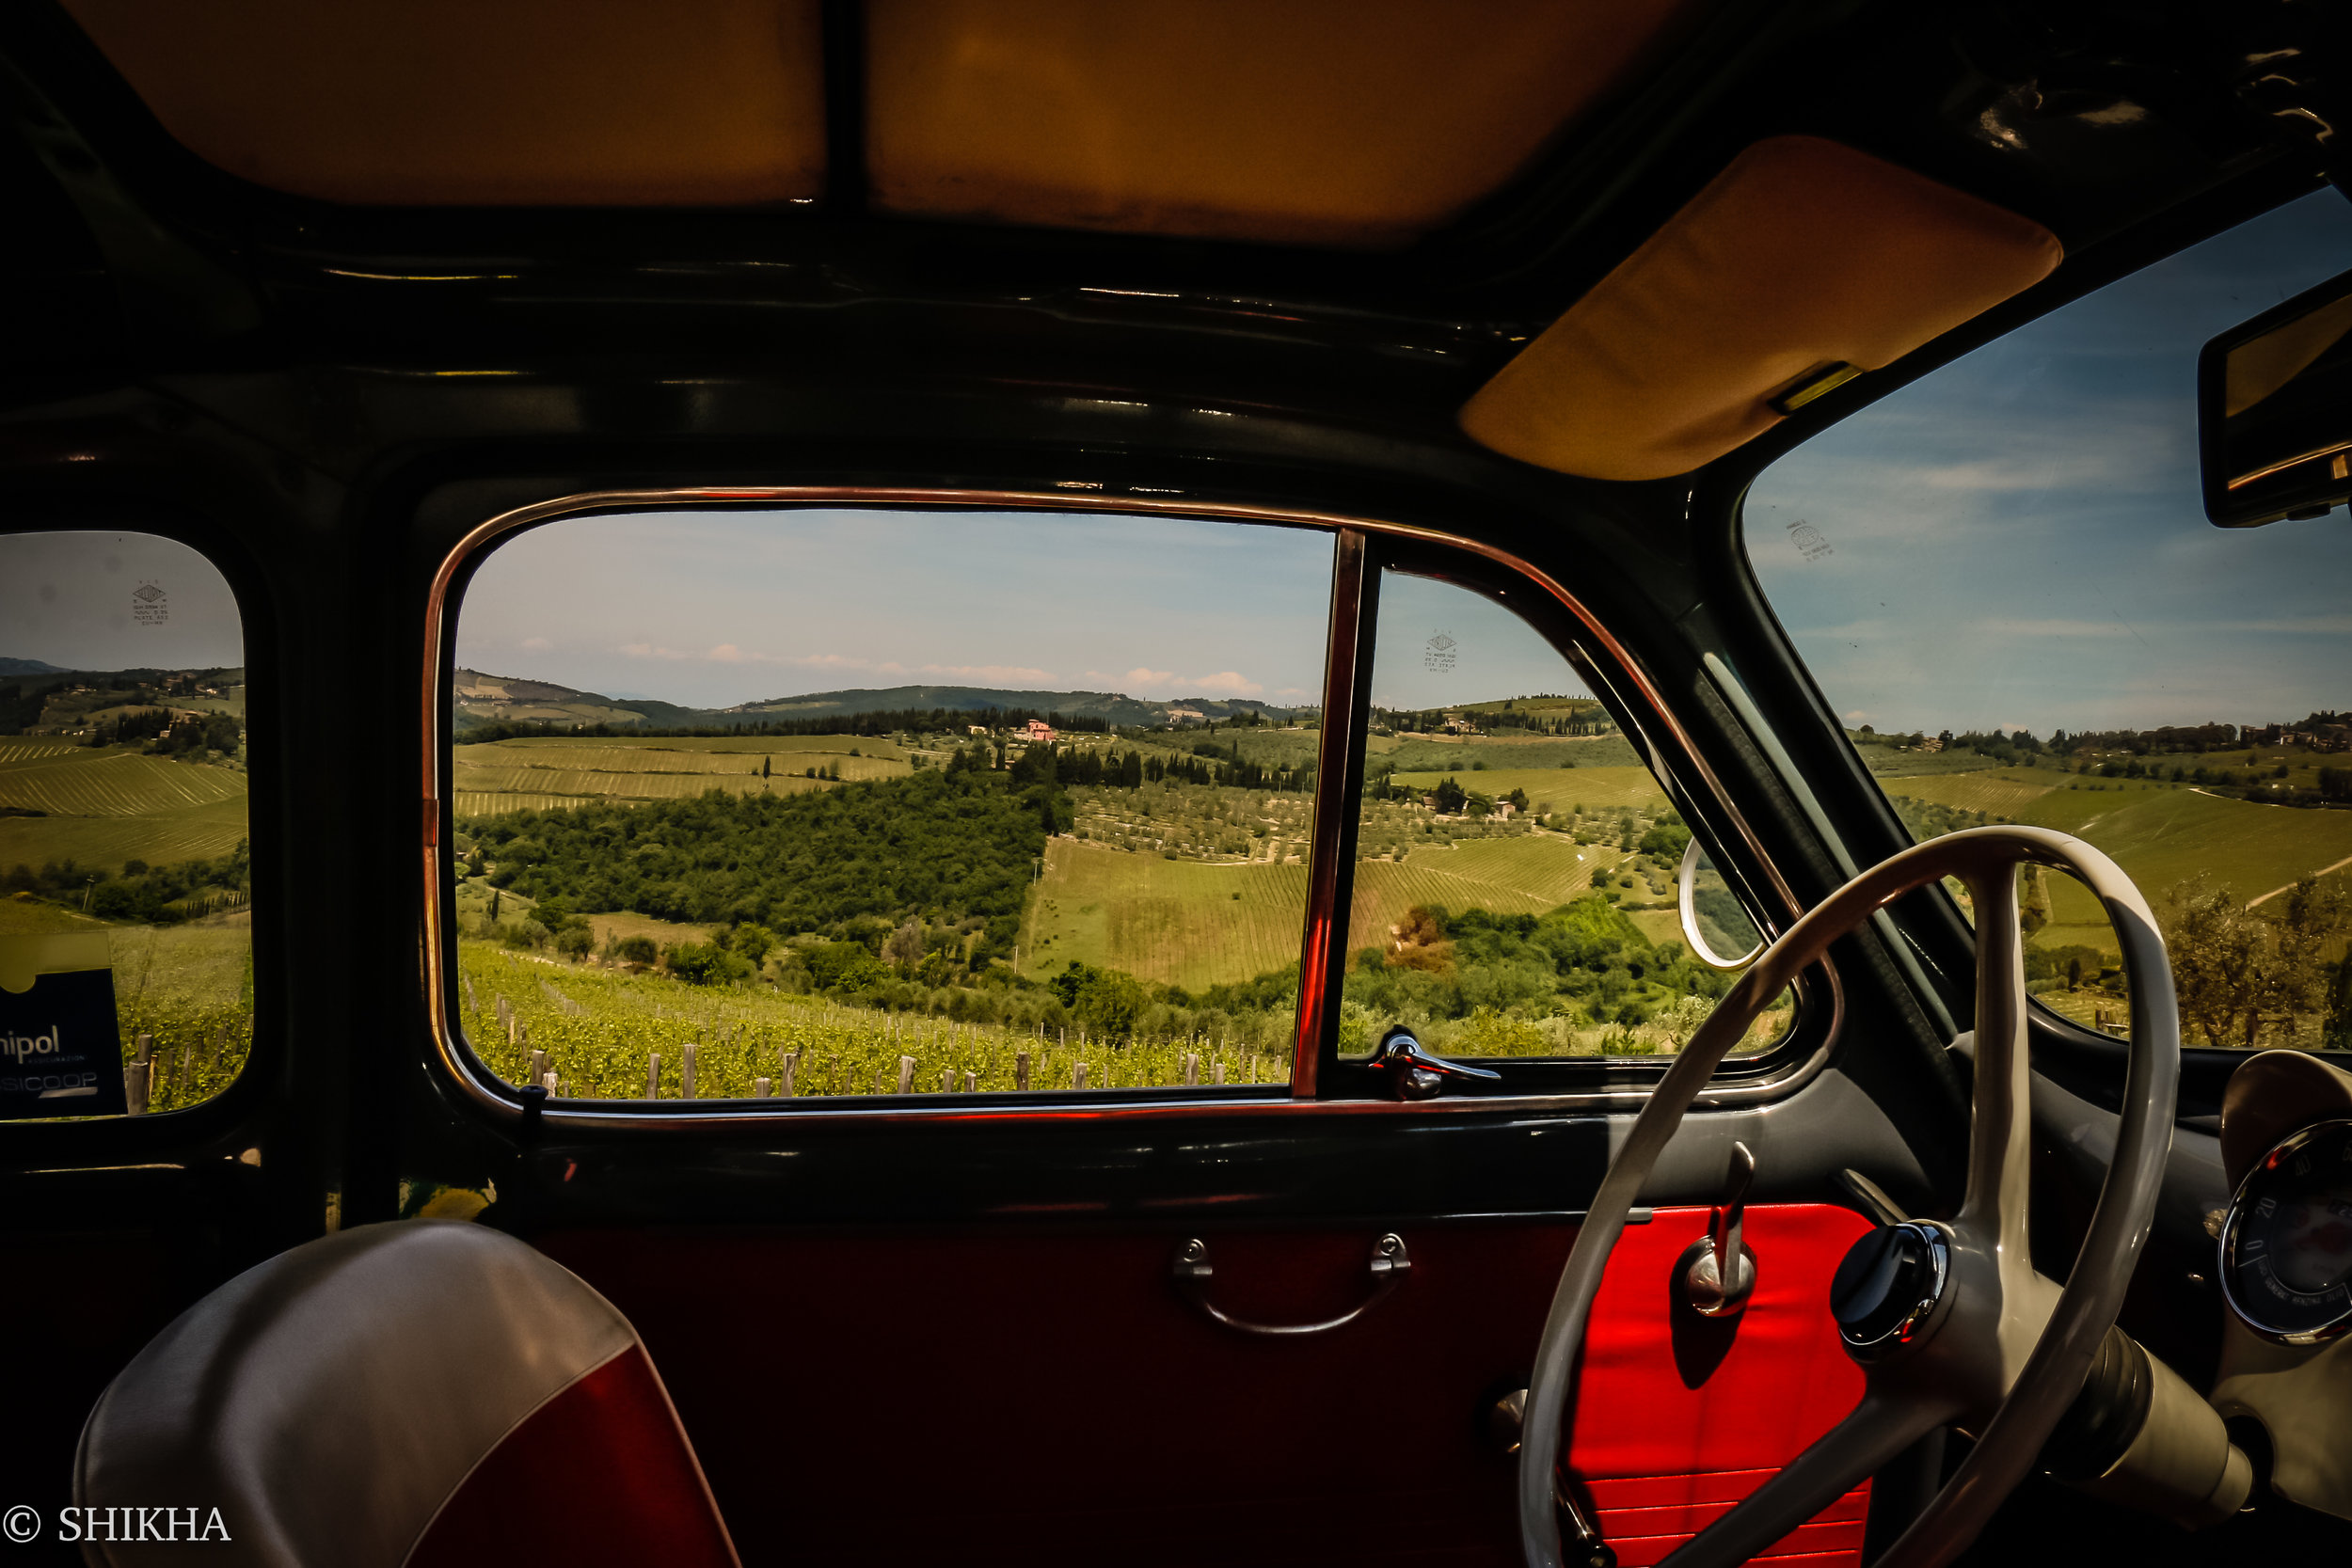 Driving under the tuscan sun